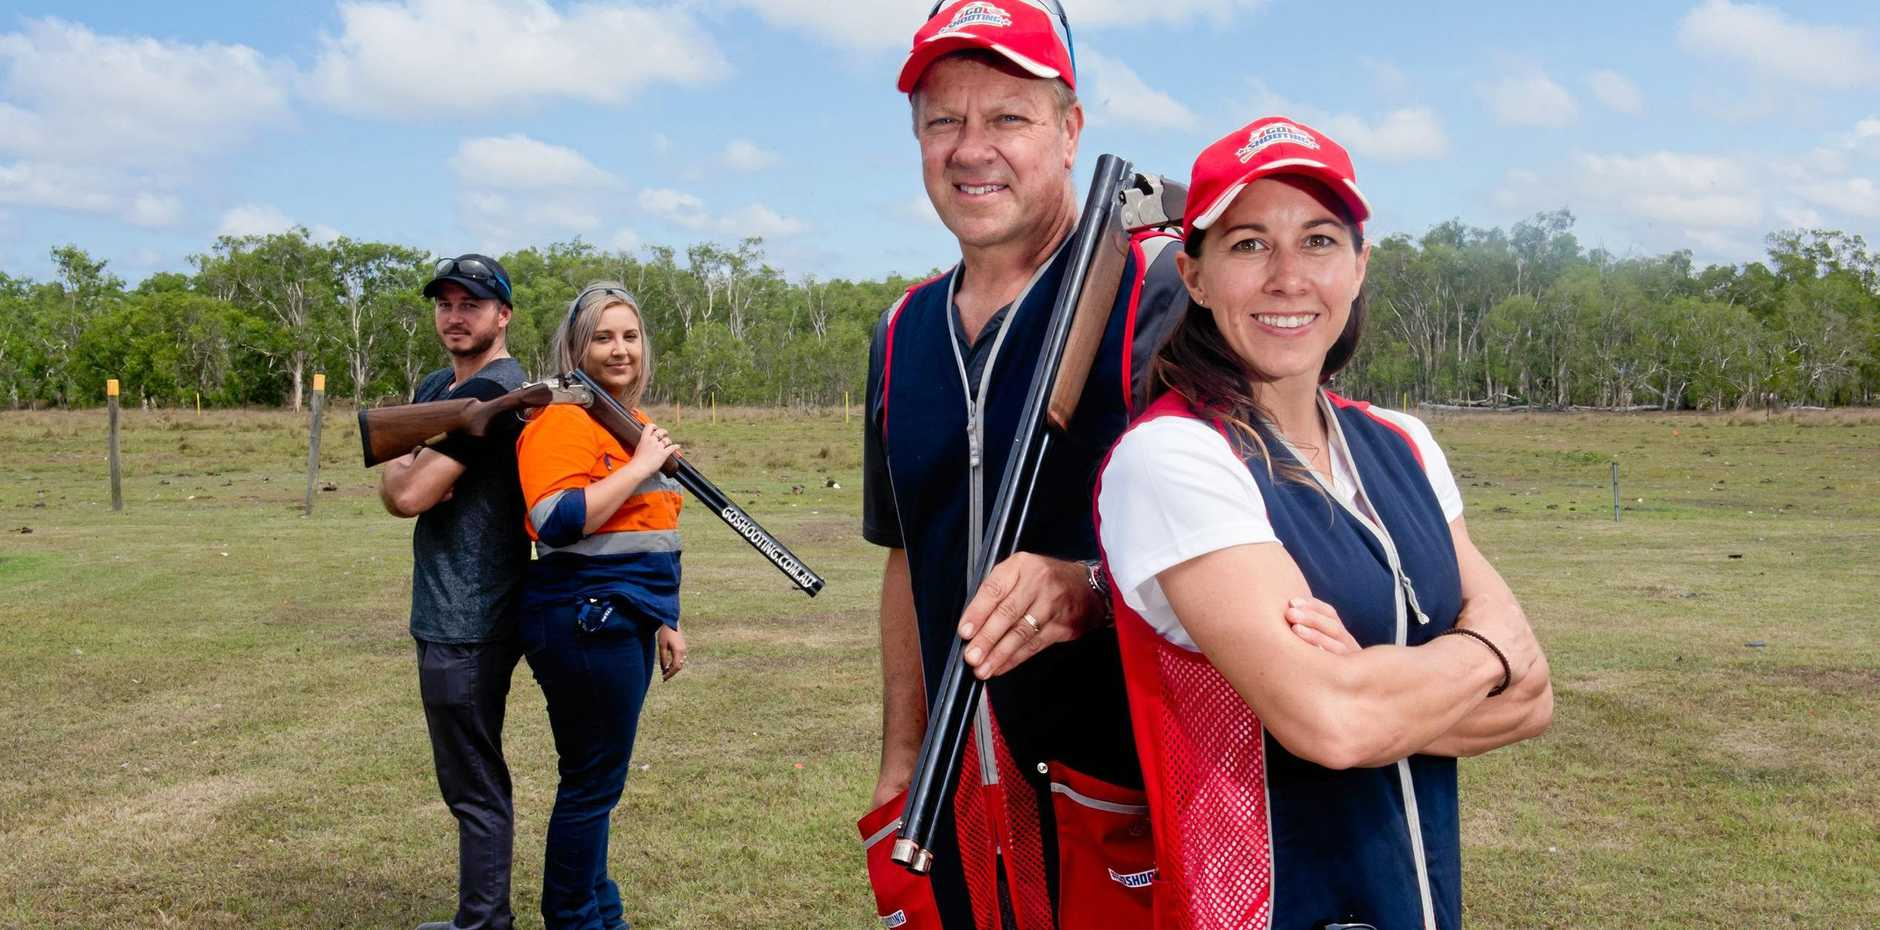 Champion shooters Russell and Lauryn Mark (right) at the Pioneer Clay Target Club teach the basics to locals Kenneth Ryan and Sarah Elvin (left).